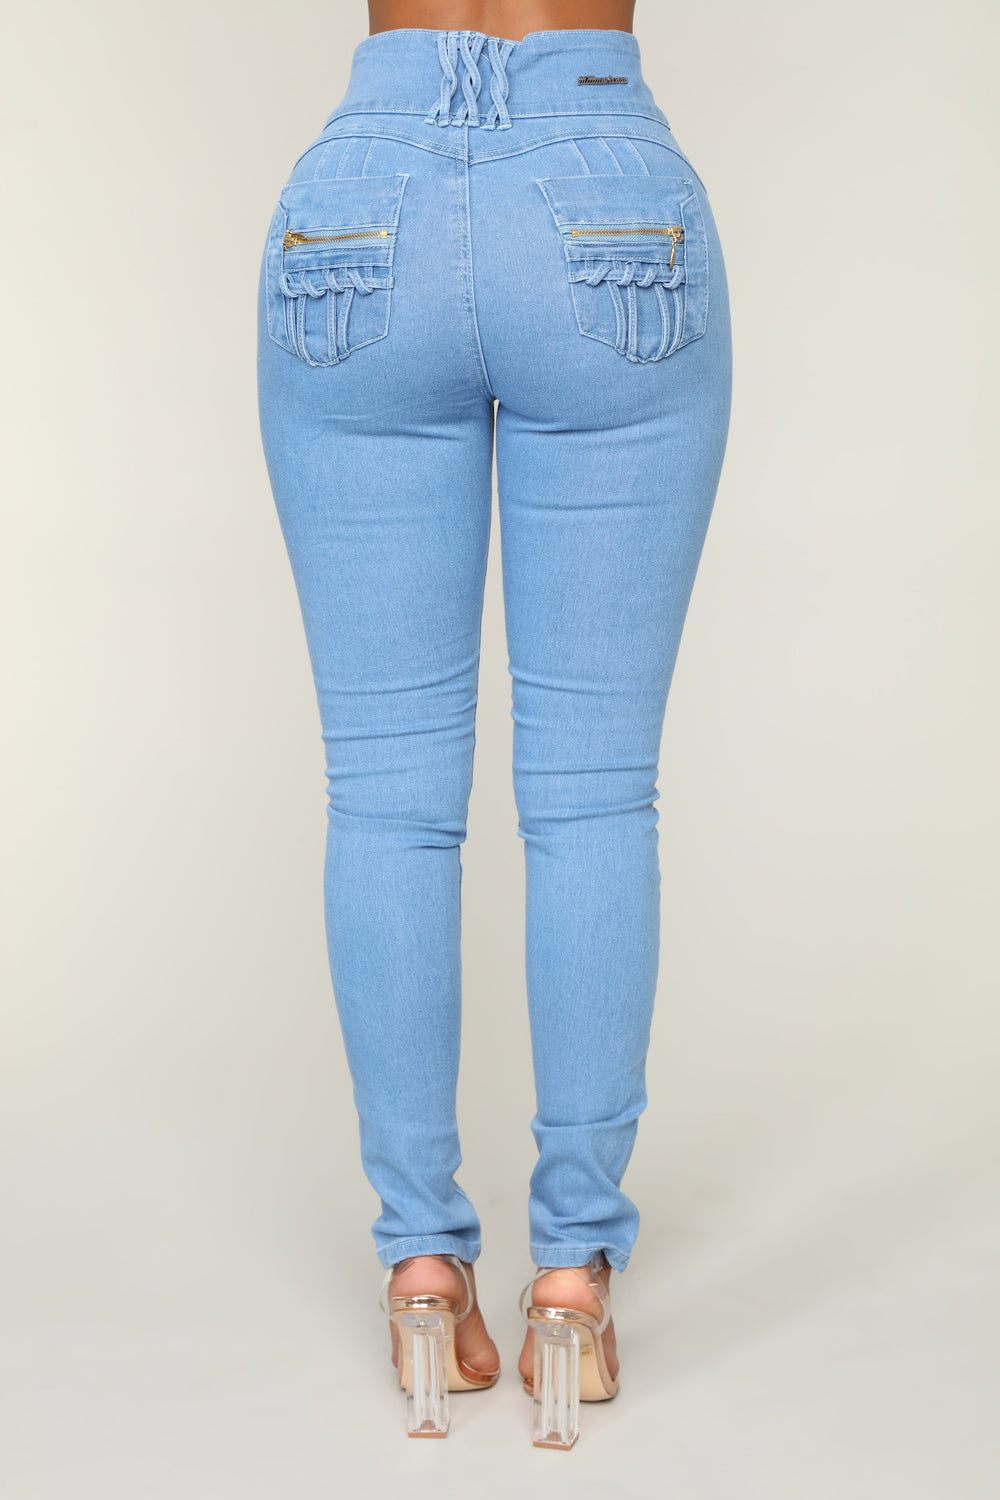 Hold Me Tight High Rise Skinny Jeans - Light Blue Wash